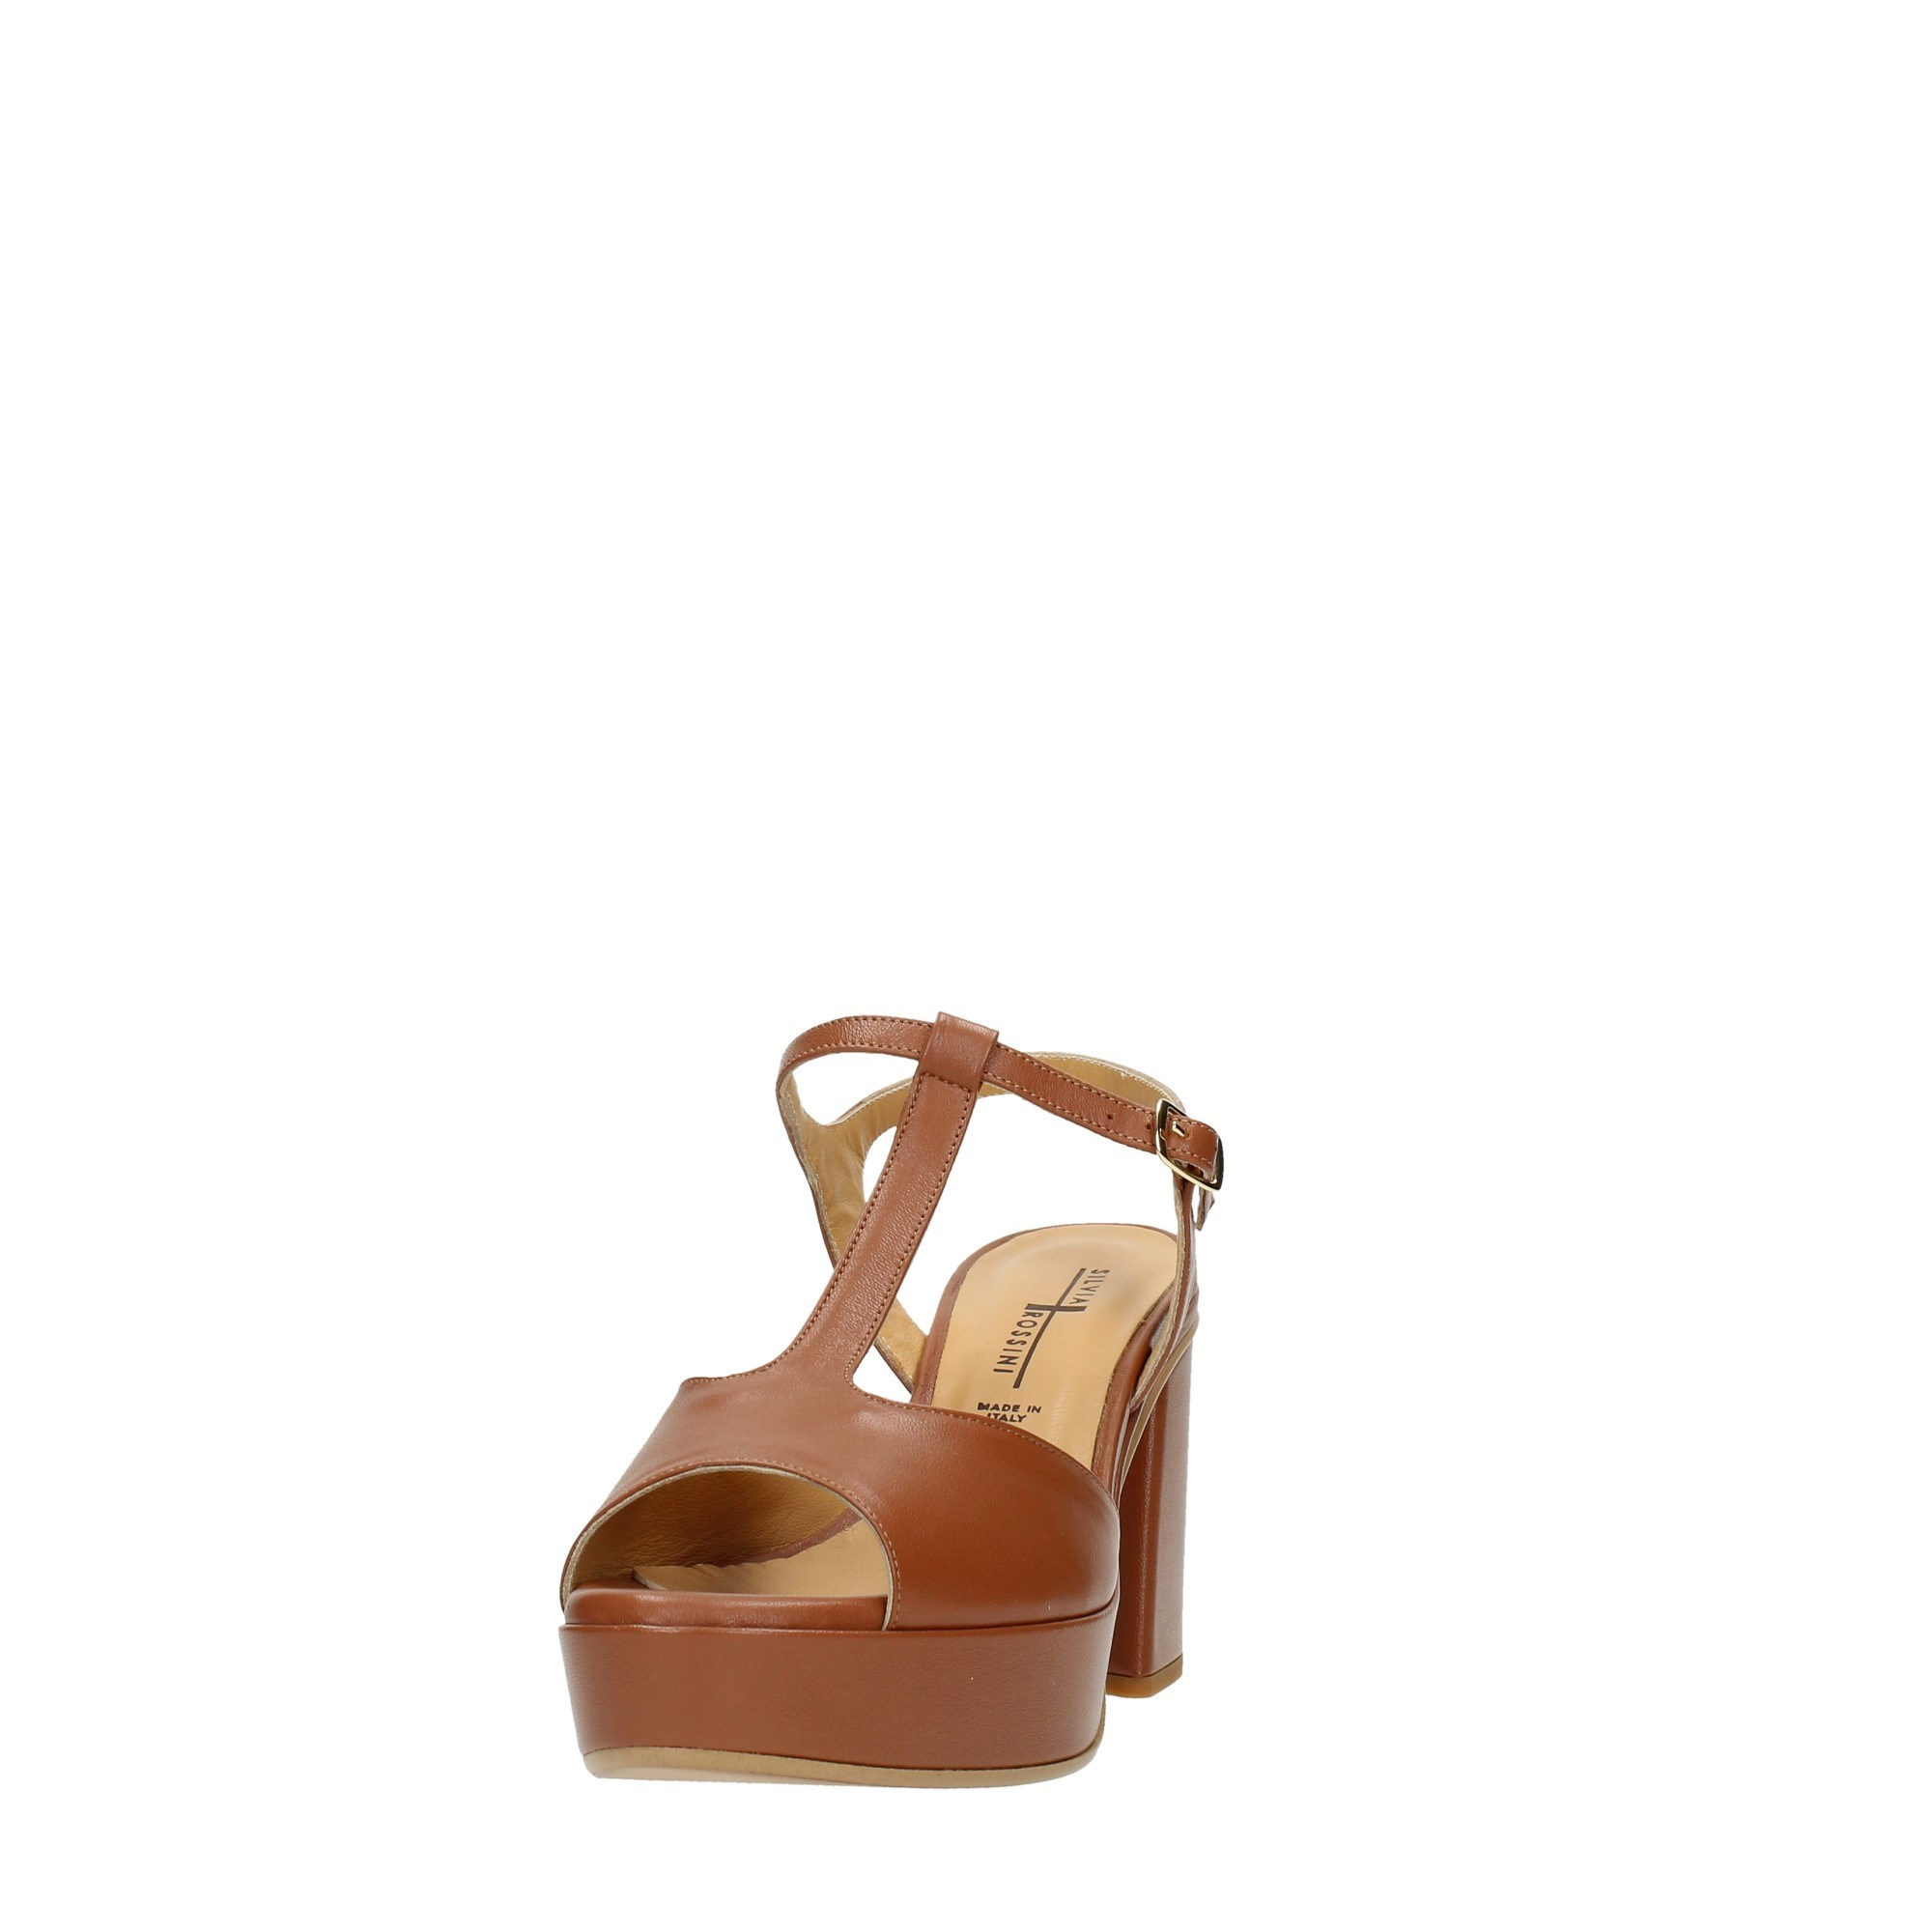 Silvia Rossini Shoes Women Sandals Leather SR13